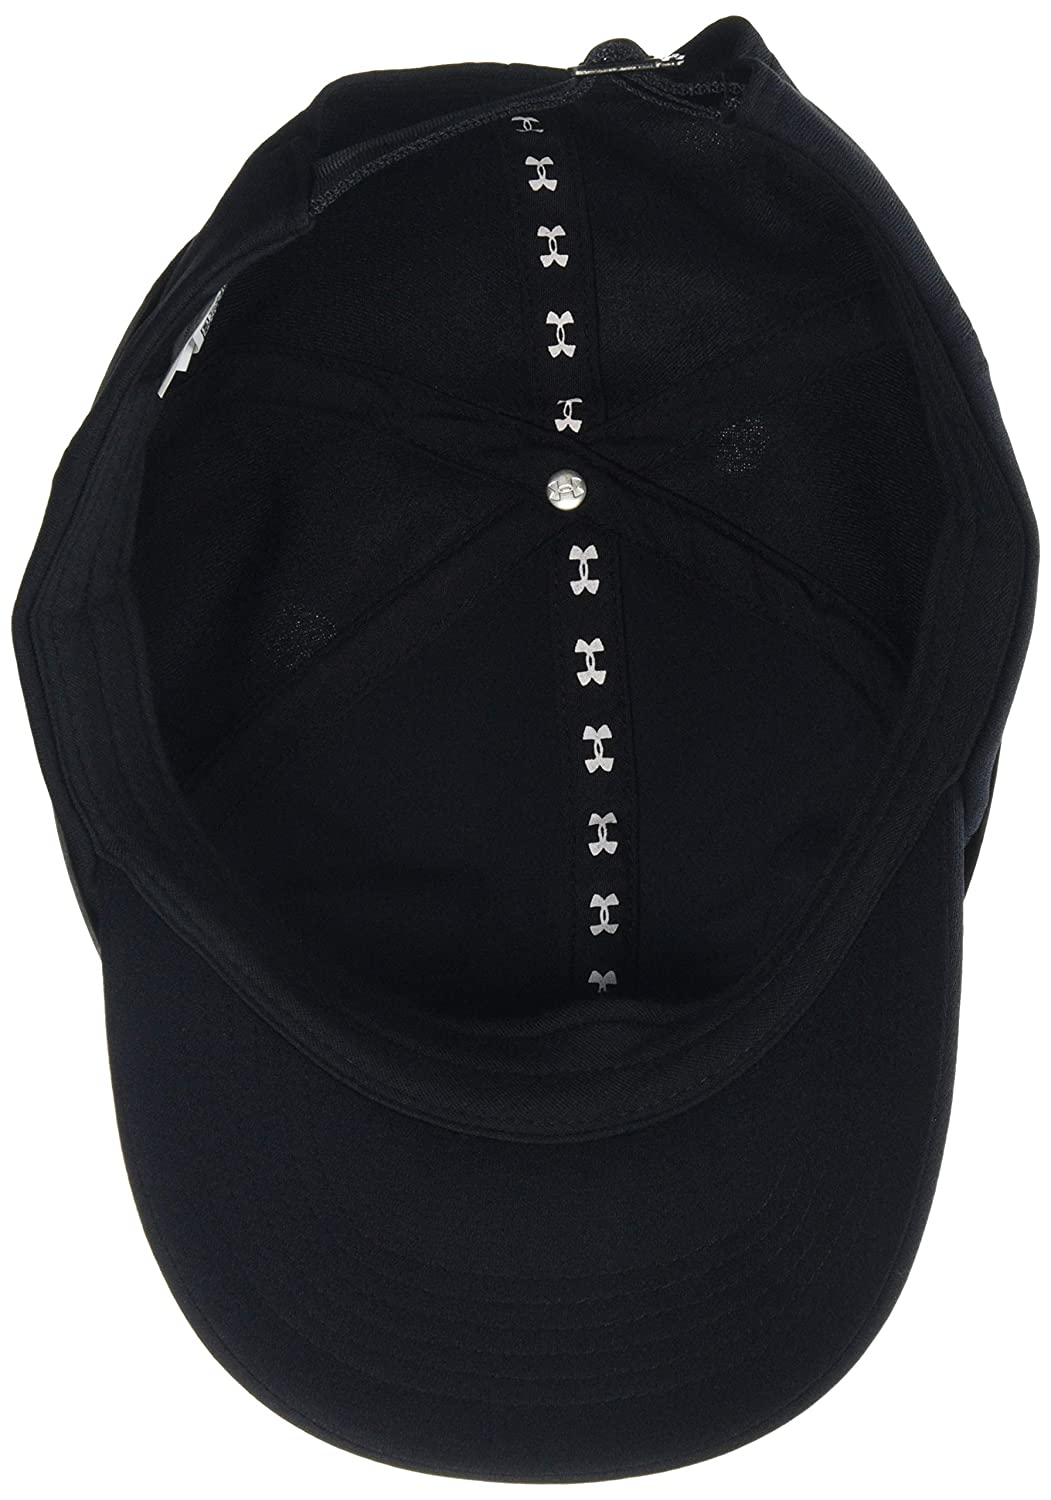 67eb80be51f Amazon.com  Under Armour UA Microthread Renegade Cap OSFA Black  Sports    Outdoors